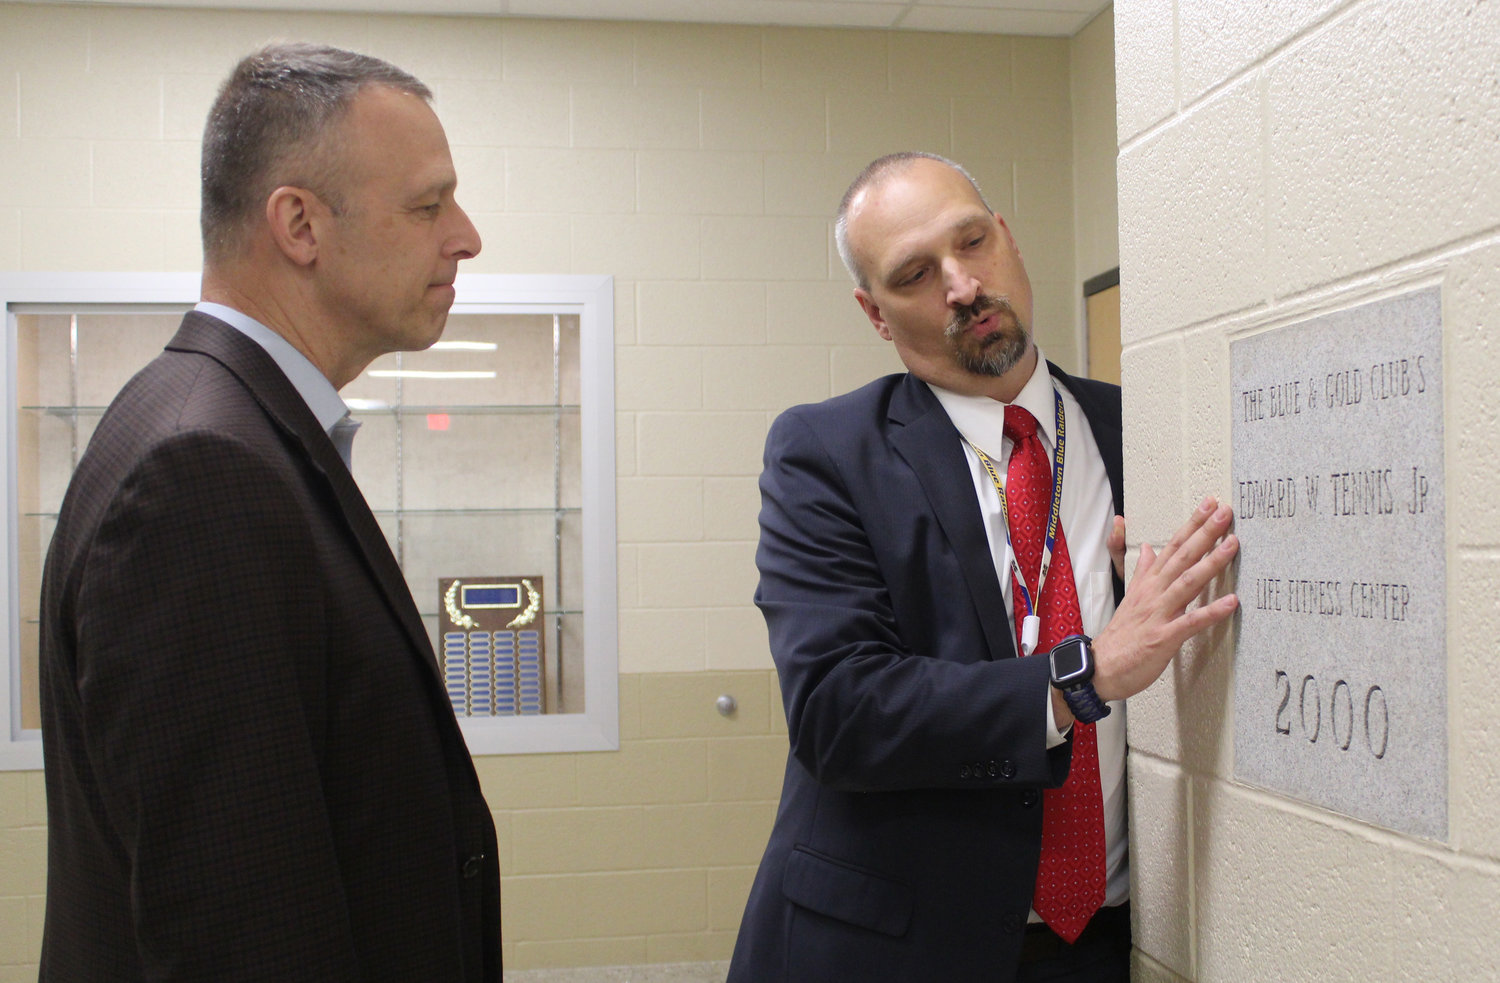 Principal Mike Carnes shows Congressman Scott Perry the dedication to Edward W. Tennis Jr. during a tour of MAHS on May 3.